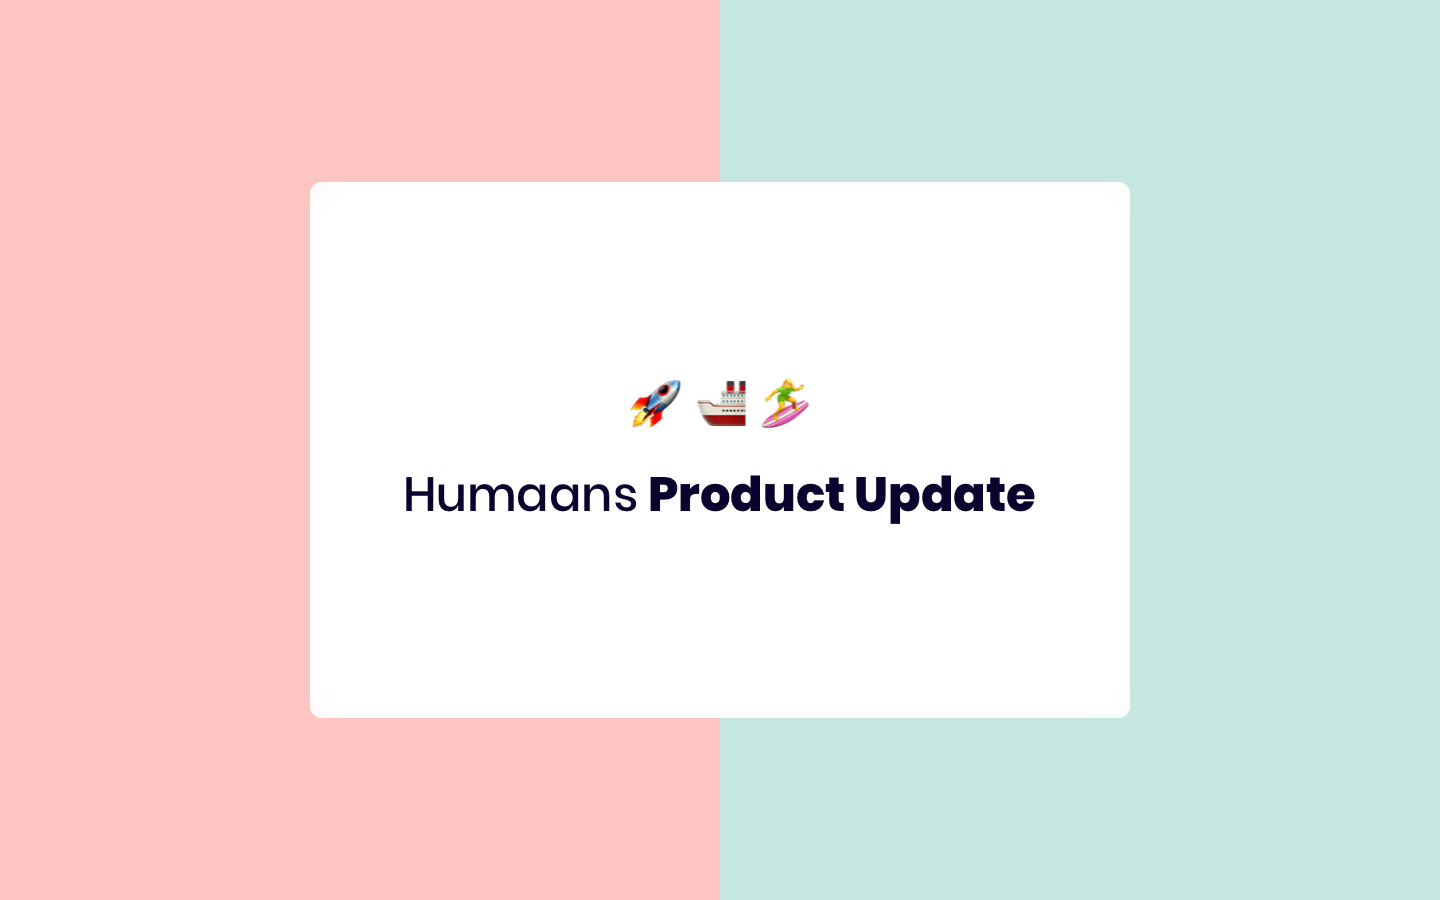 Humaans product update: Integrations, Permissions, Export